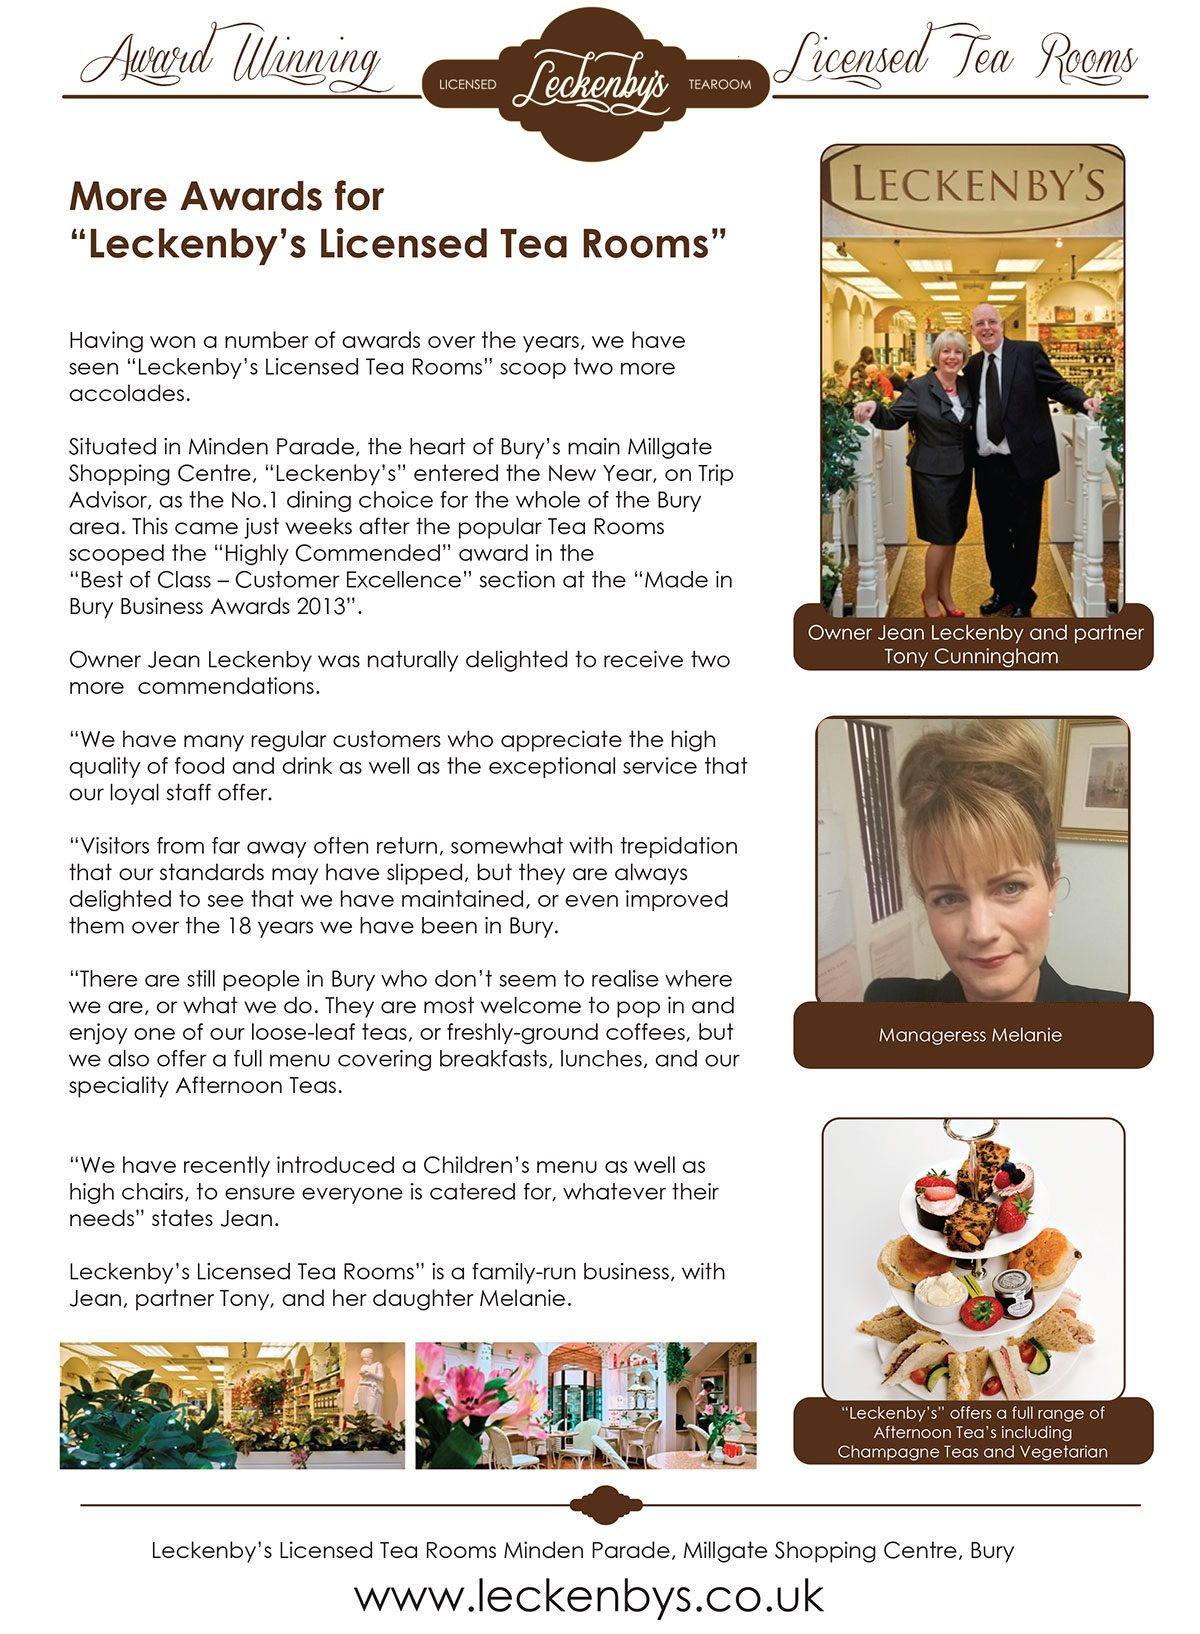 https://www.leckenbys.co.uk/wp-content/uploads/2015/05/press-release-1200x1634-1-1200x1634.png